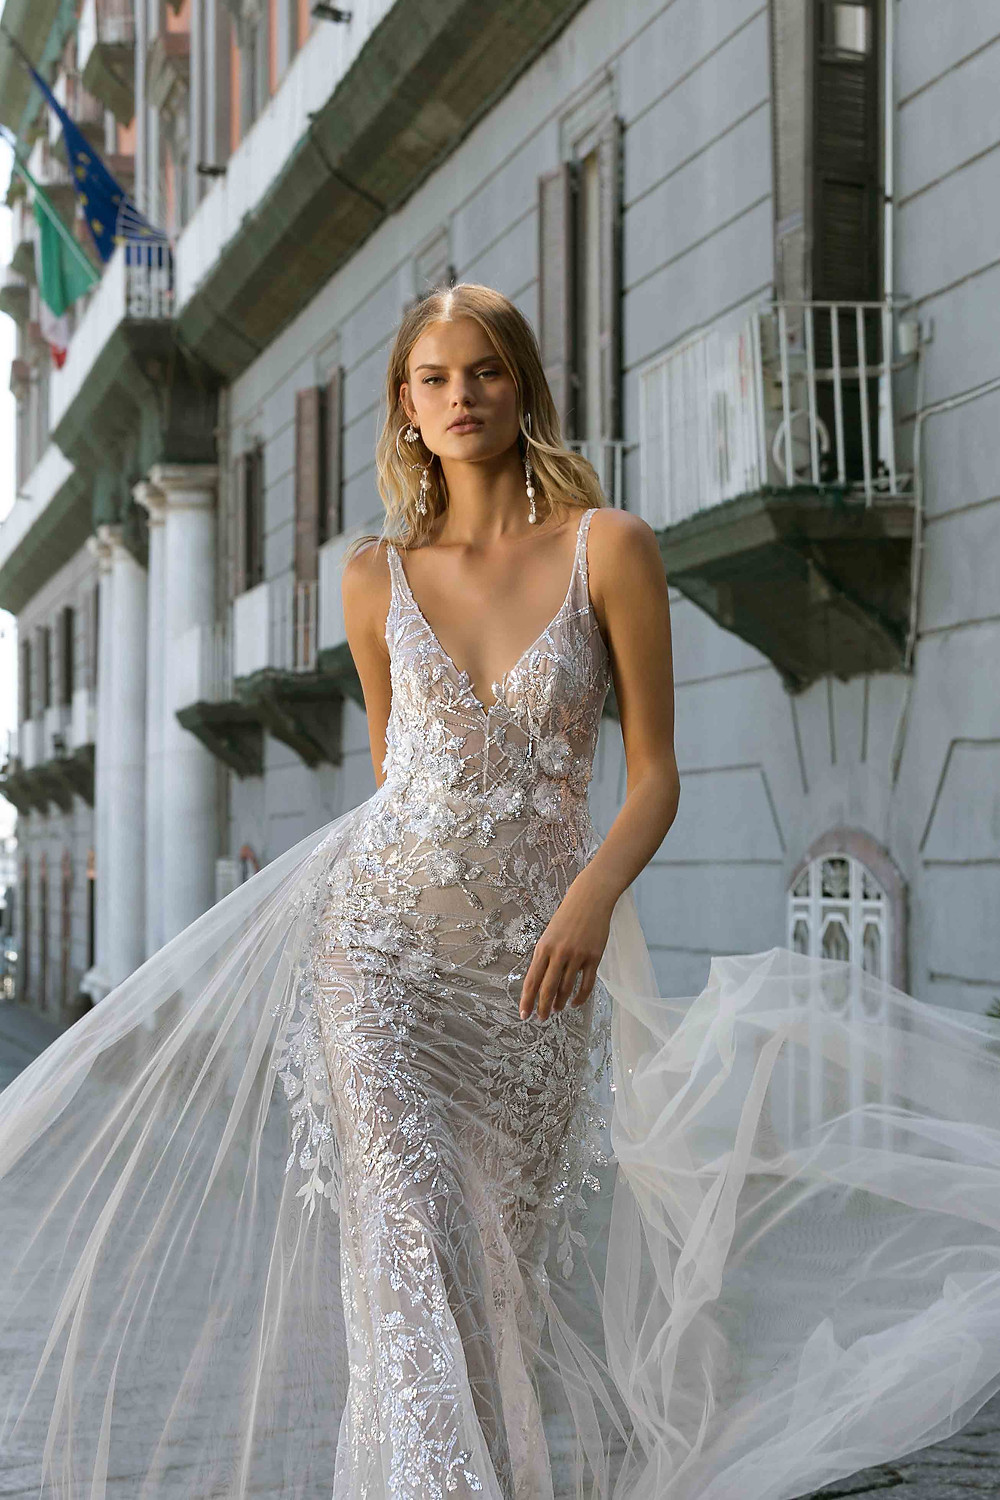 A lace mermaid wedding dress, with crystals, thin straps, deep v neckline and tulle detachable skirt